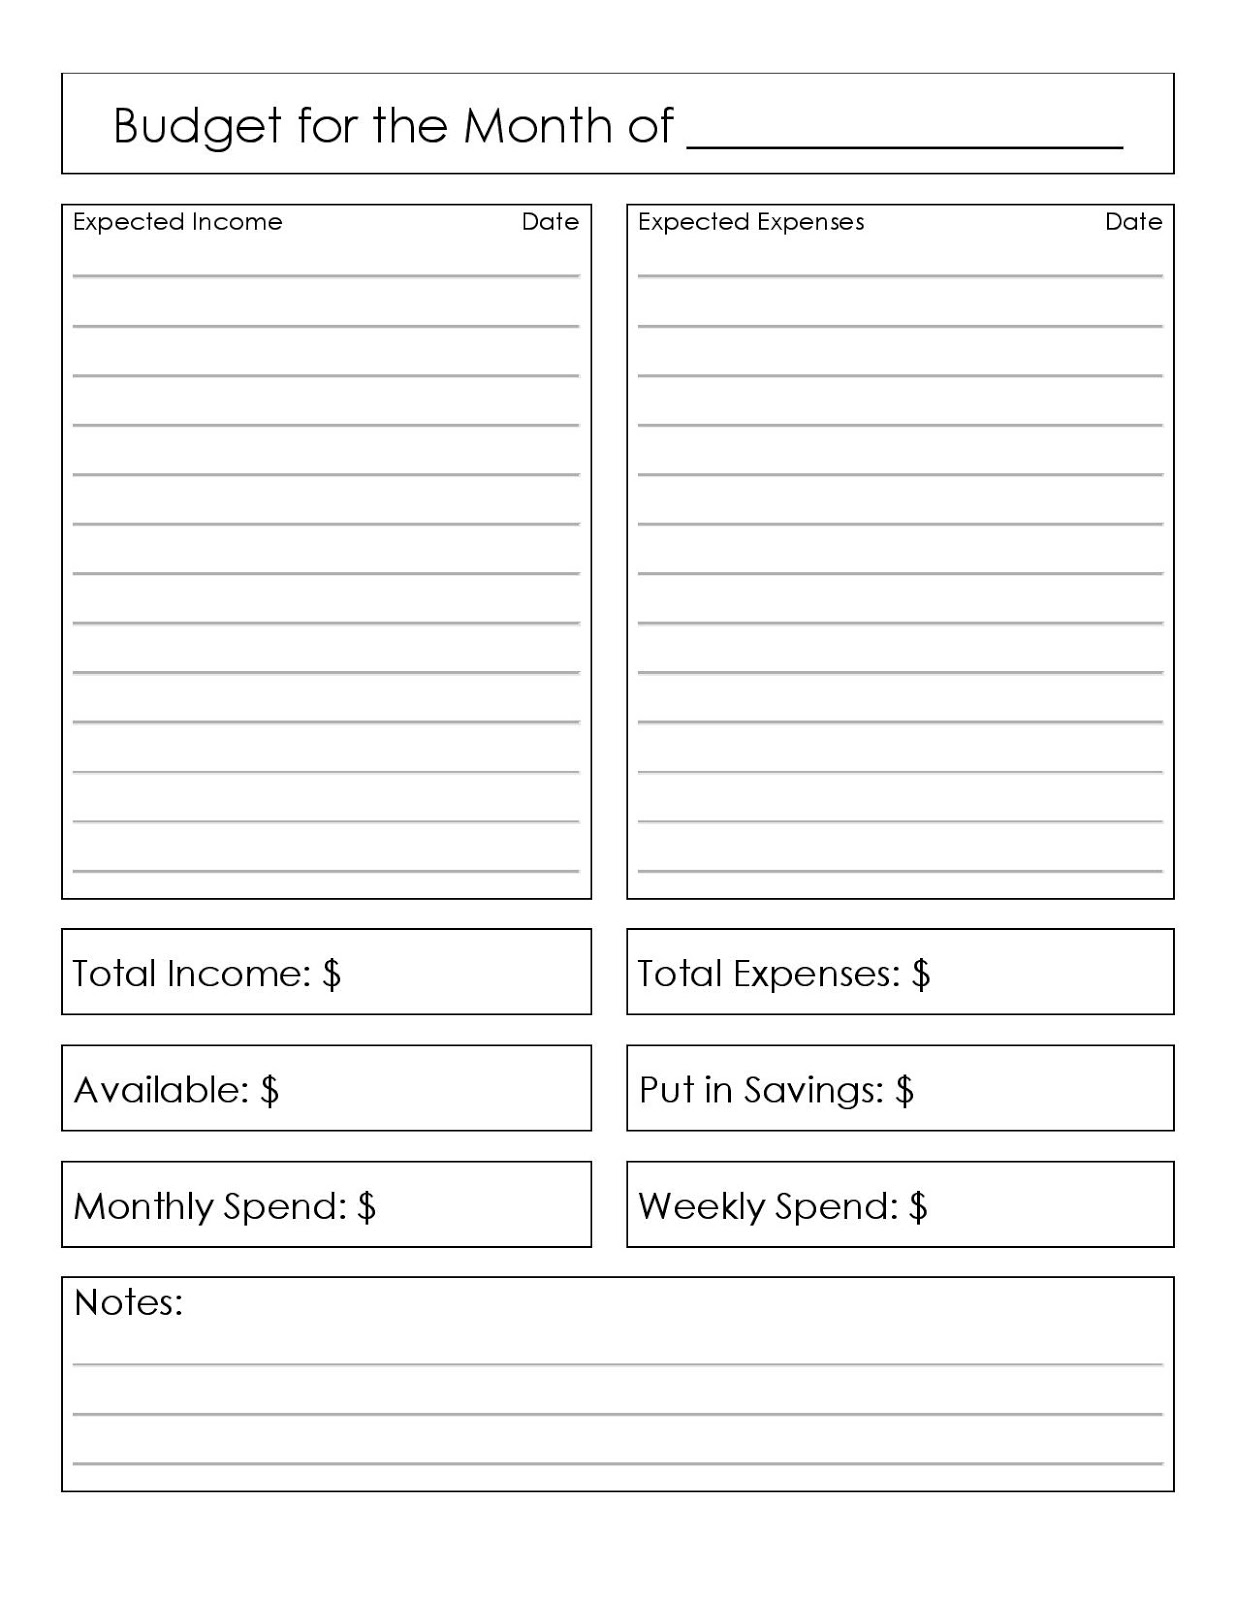 Free budget worksheets for adults